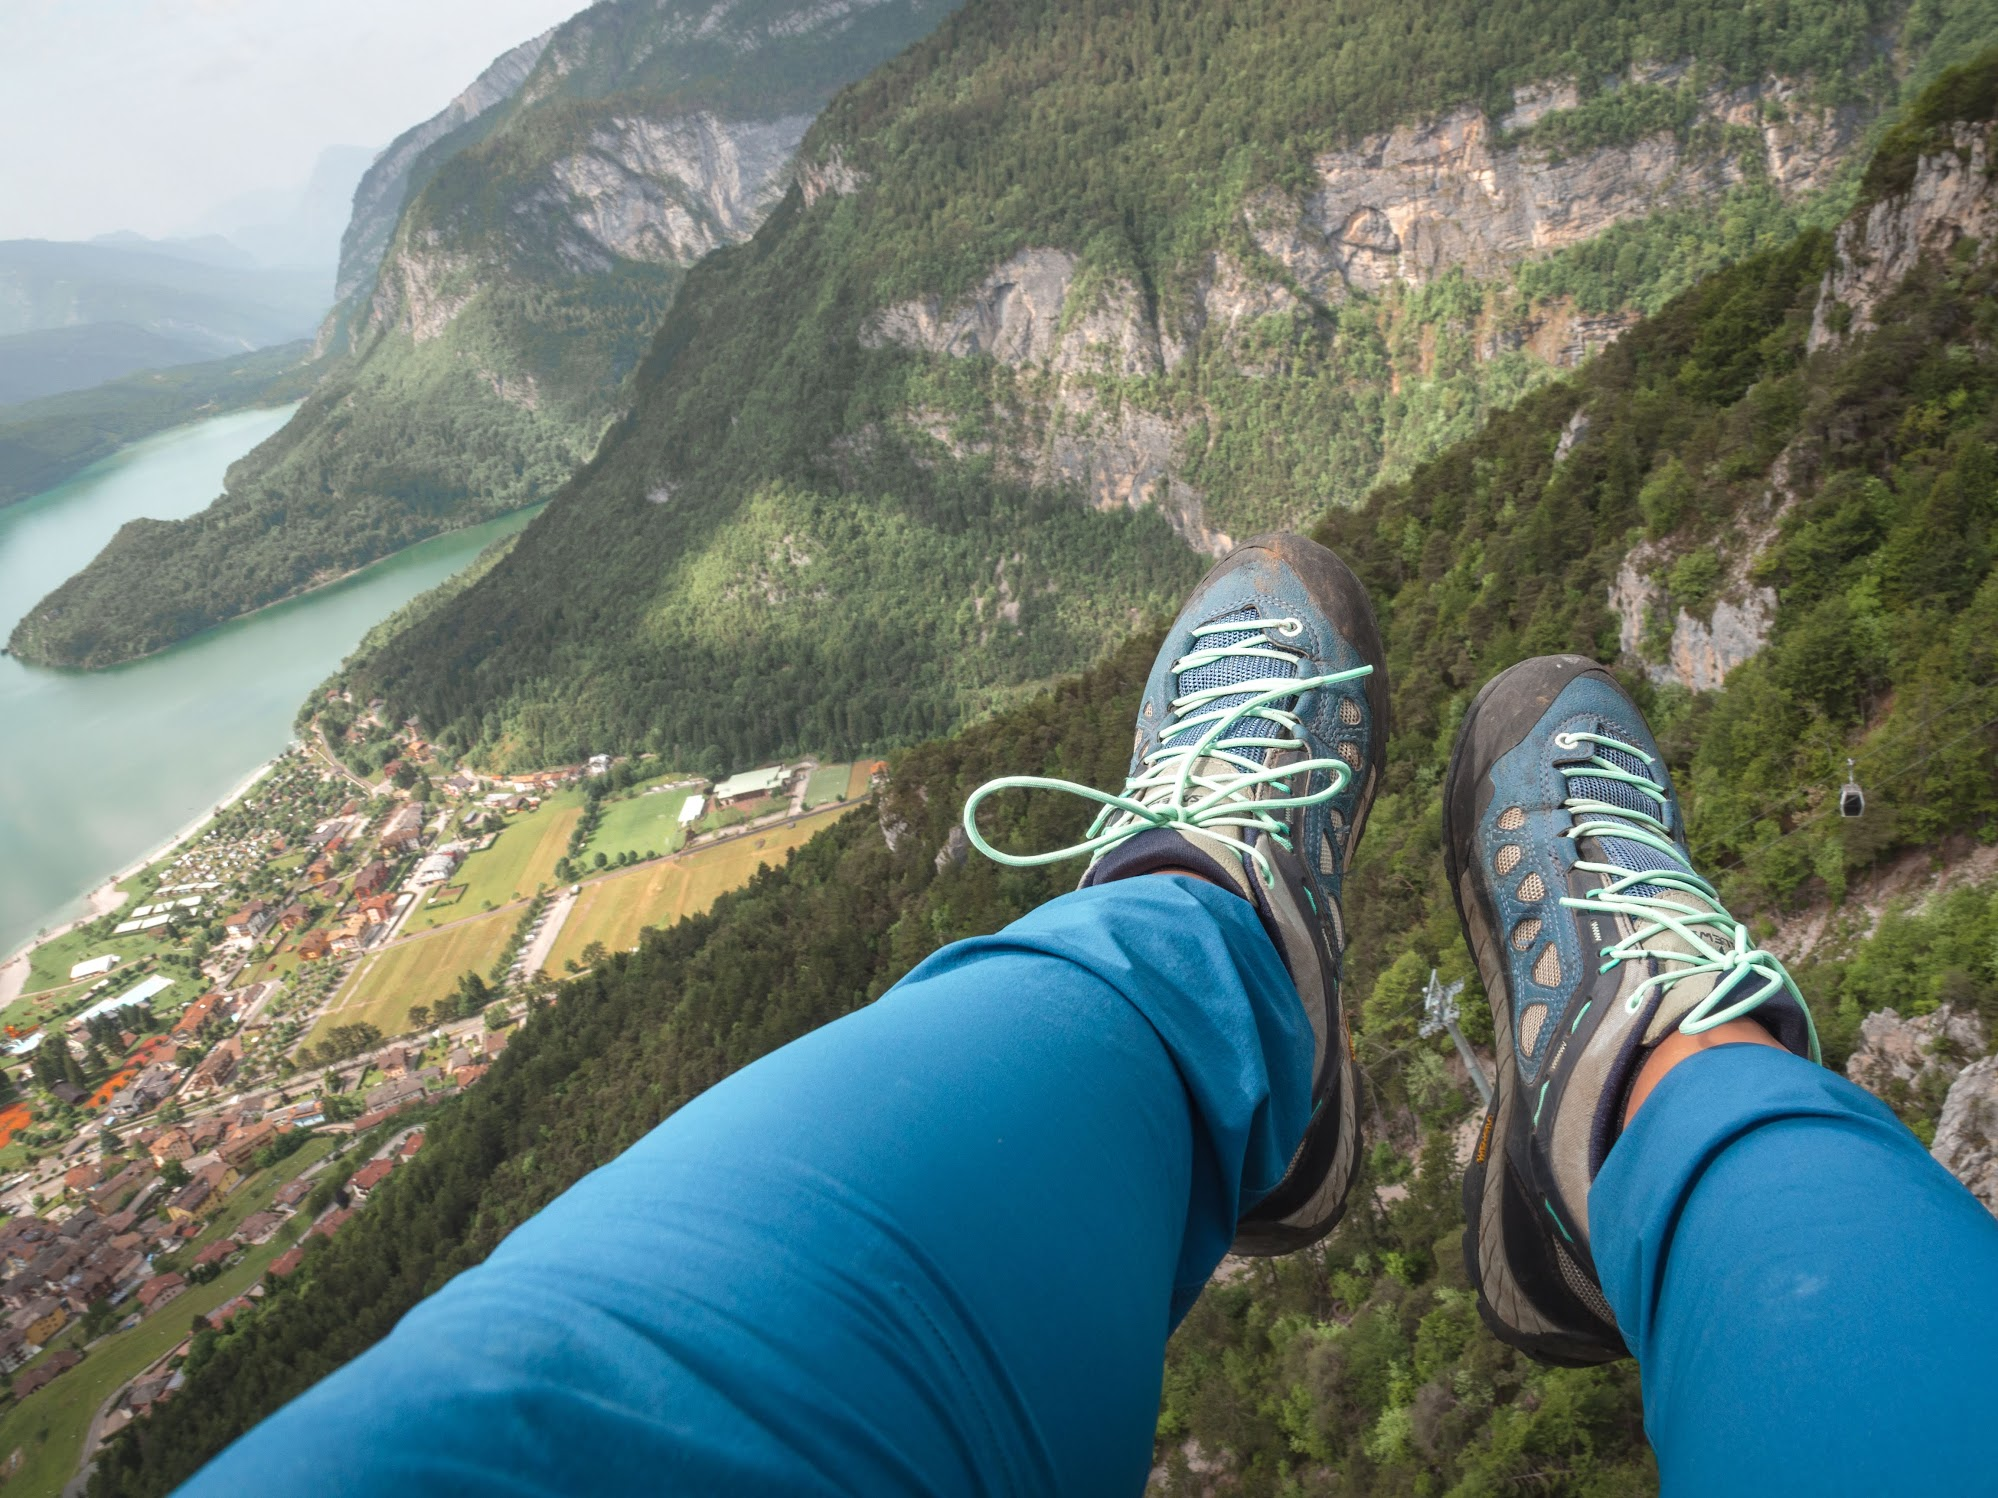 My legs high above Lake Molveno during paragliding in the Dolomites